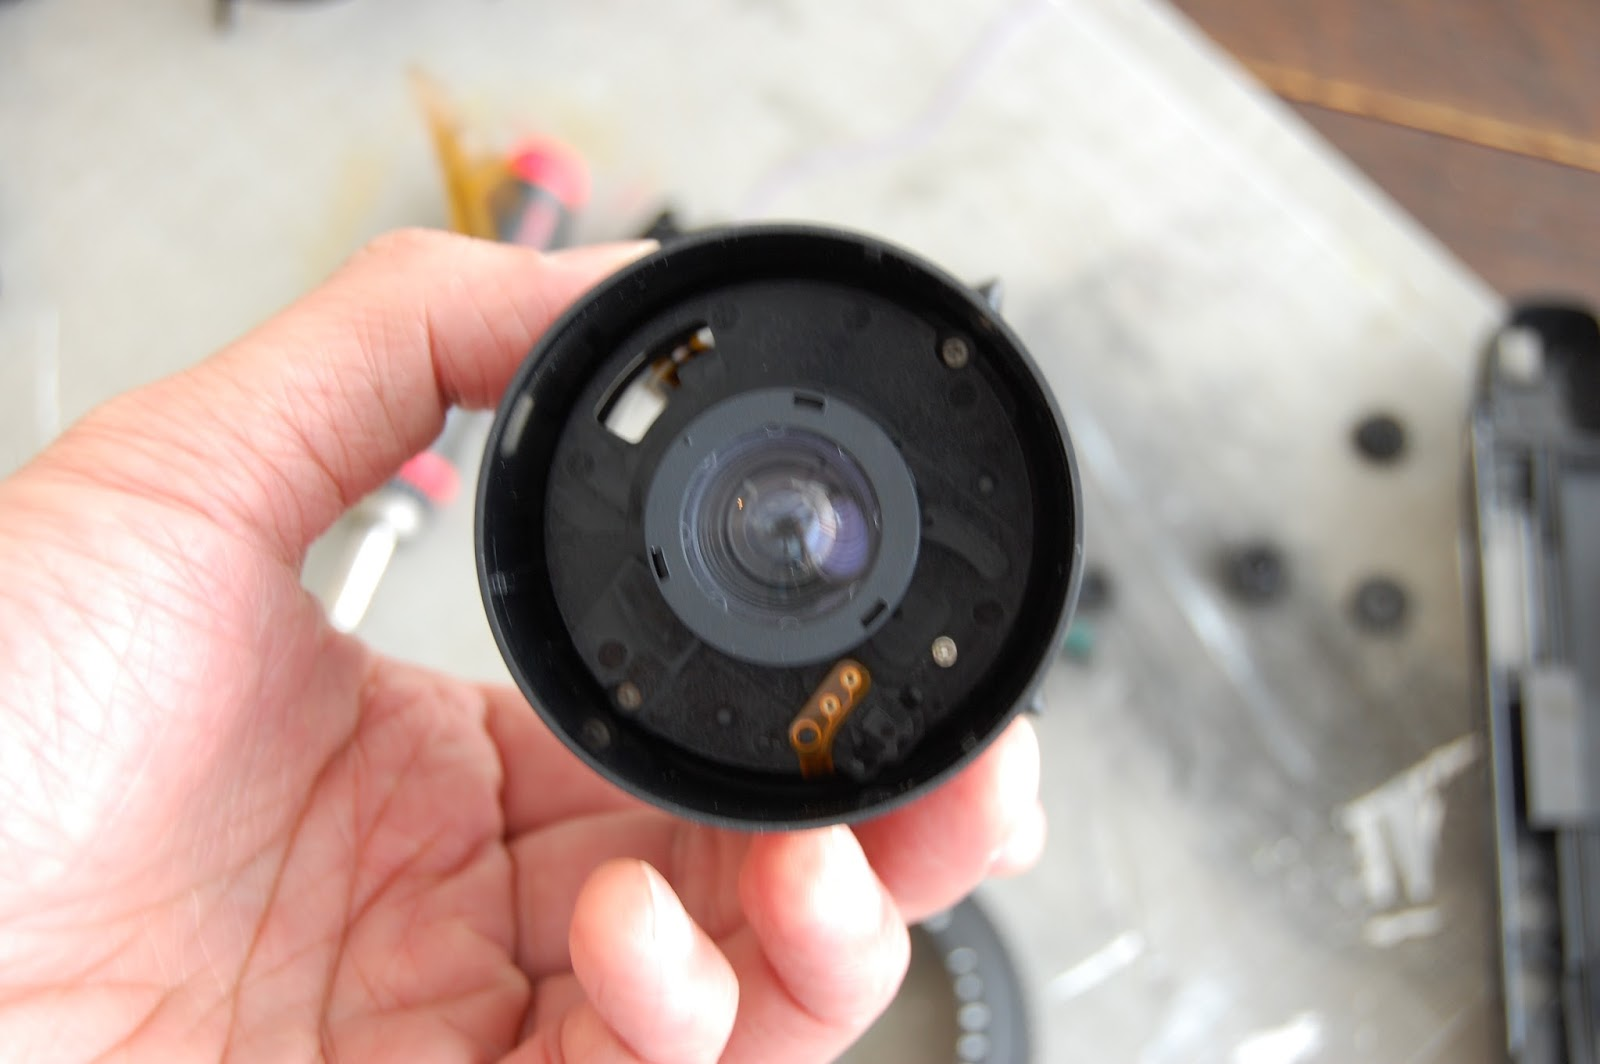 The Shutter Goes Click With Jj Lee Cameramods A Video On How I Put Hacks And Mods Diy Led Camera 10 As You Can See Barrel Has Lots Of Crap Inside It Had To Get Rid In My First Try Used Hack Saw